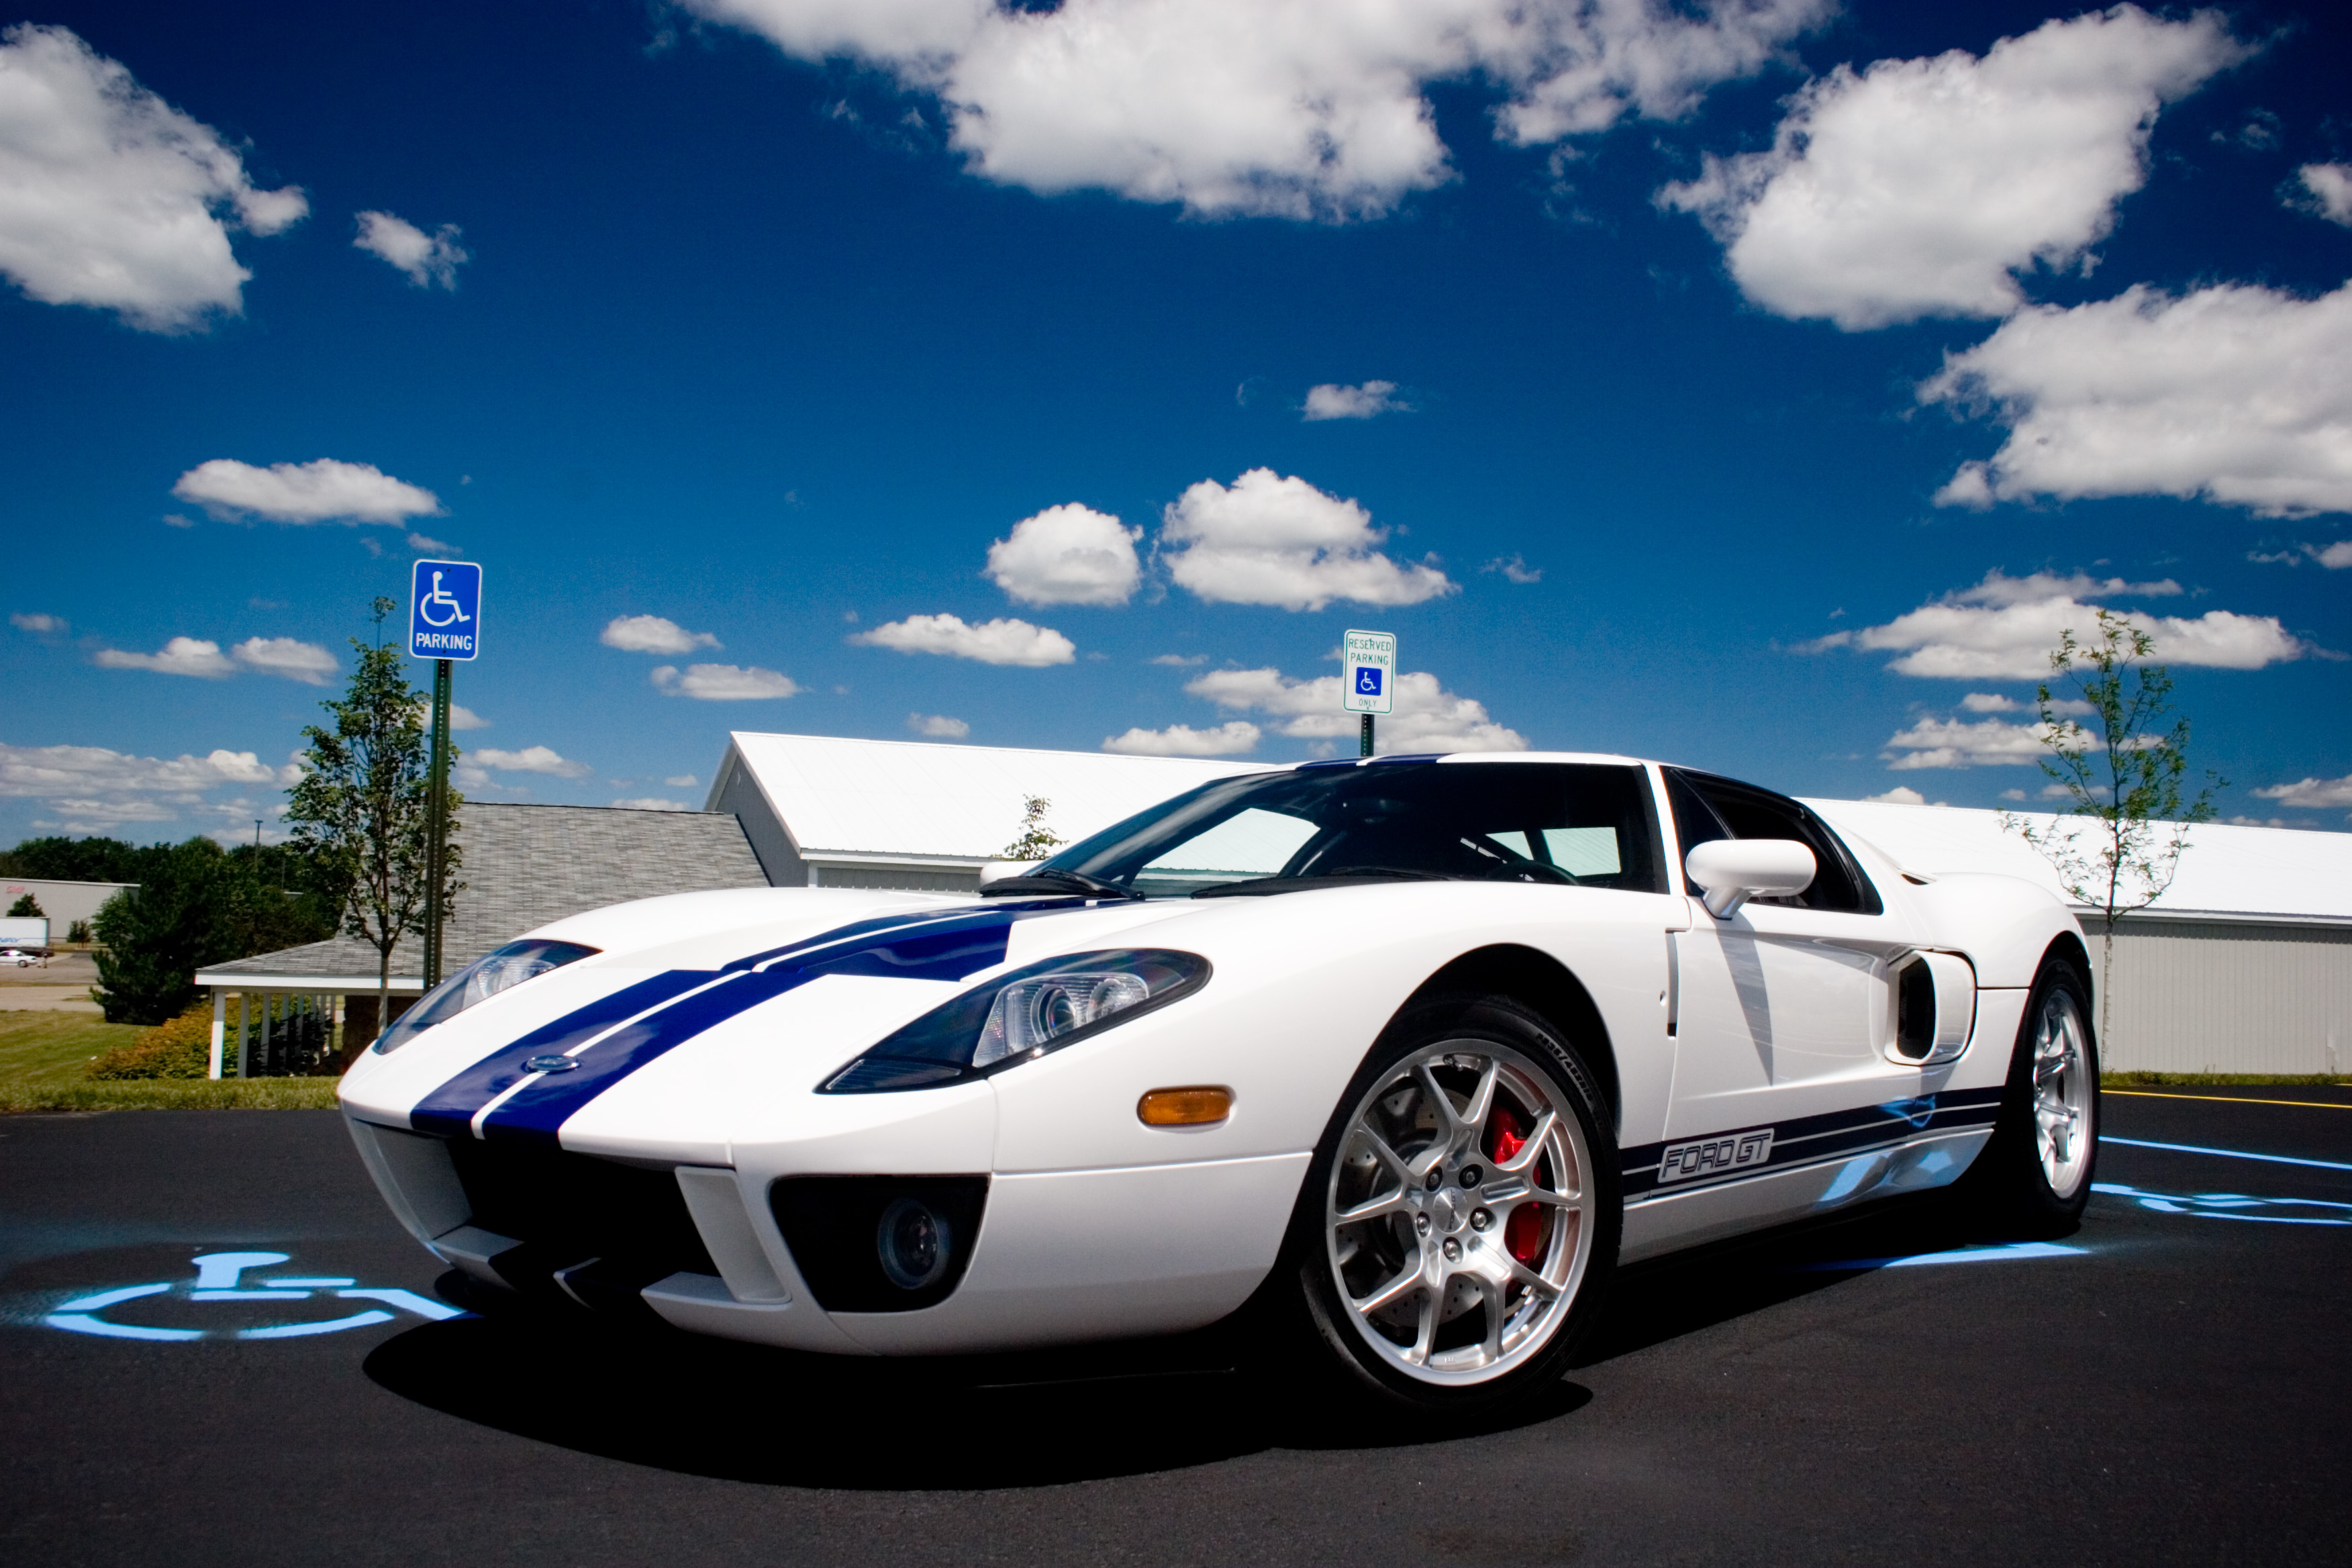 Ford Gt Wallpaper iPhone   image 317 3504x2336